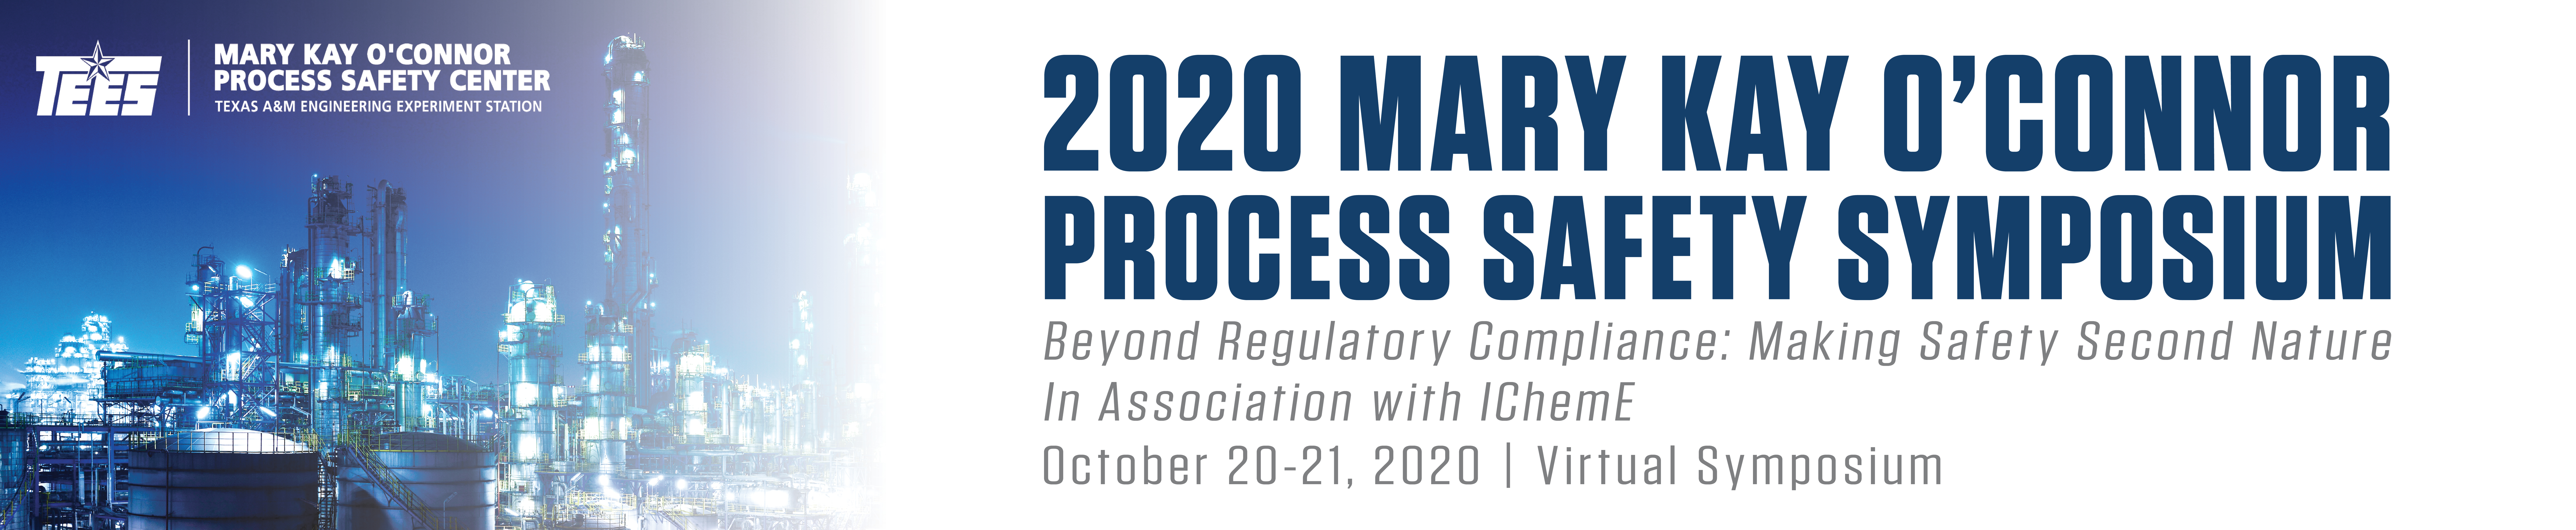 2020 Mary Kay O'Connor Process Safety Symposium